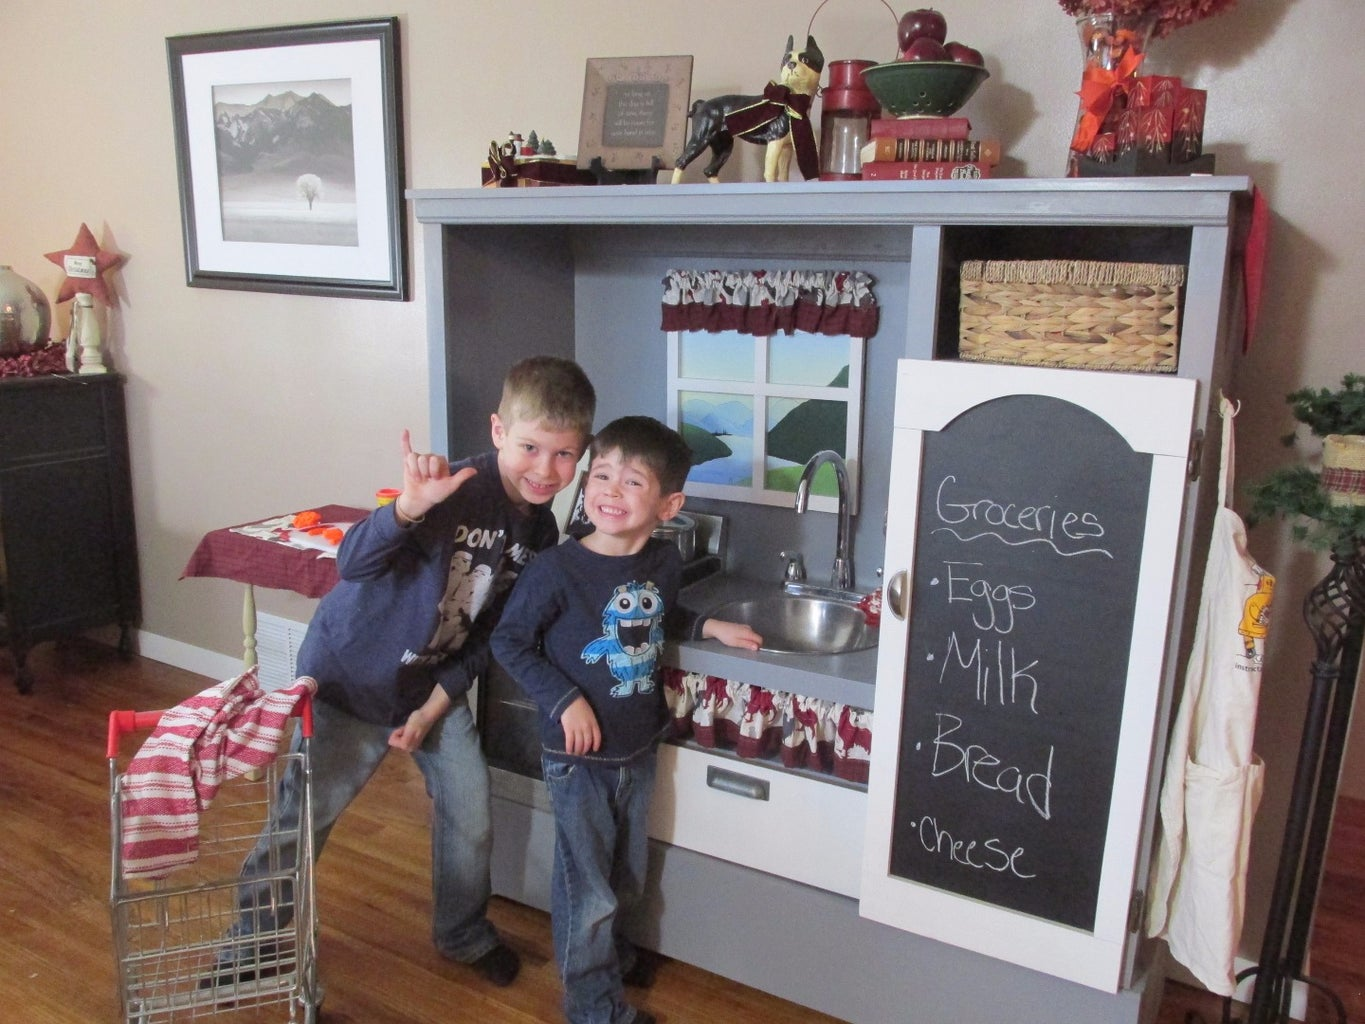 Entertainment Center to Awesome Kitchen Play Set